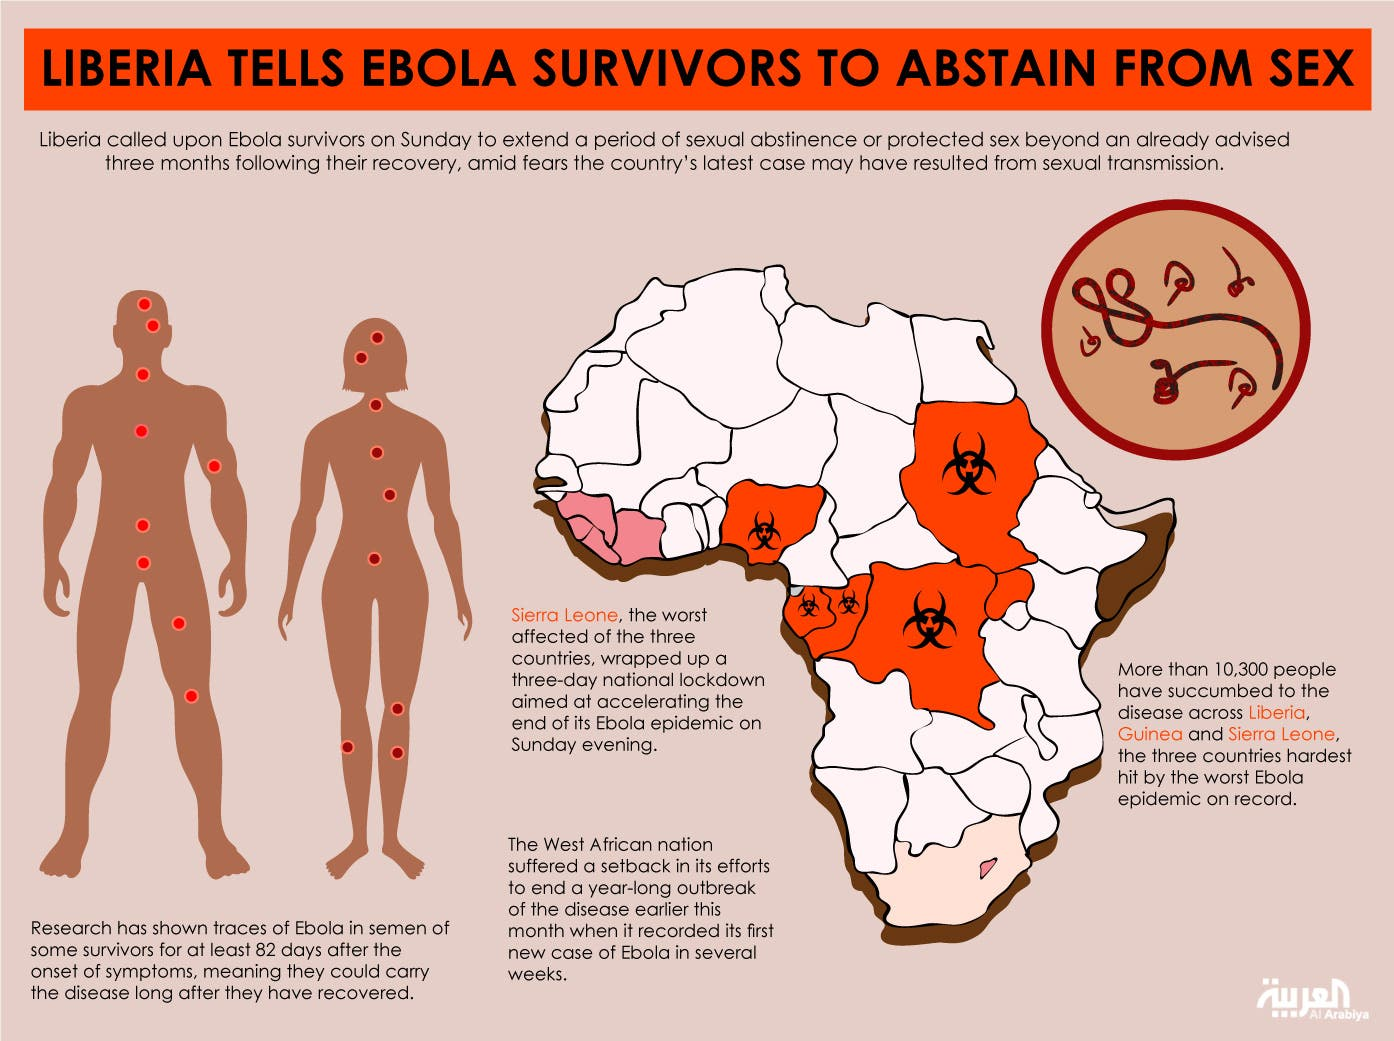 Infographic: Liberia tells Ebola survivors to abstain from sex